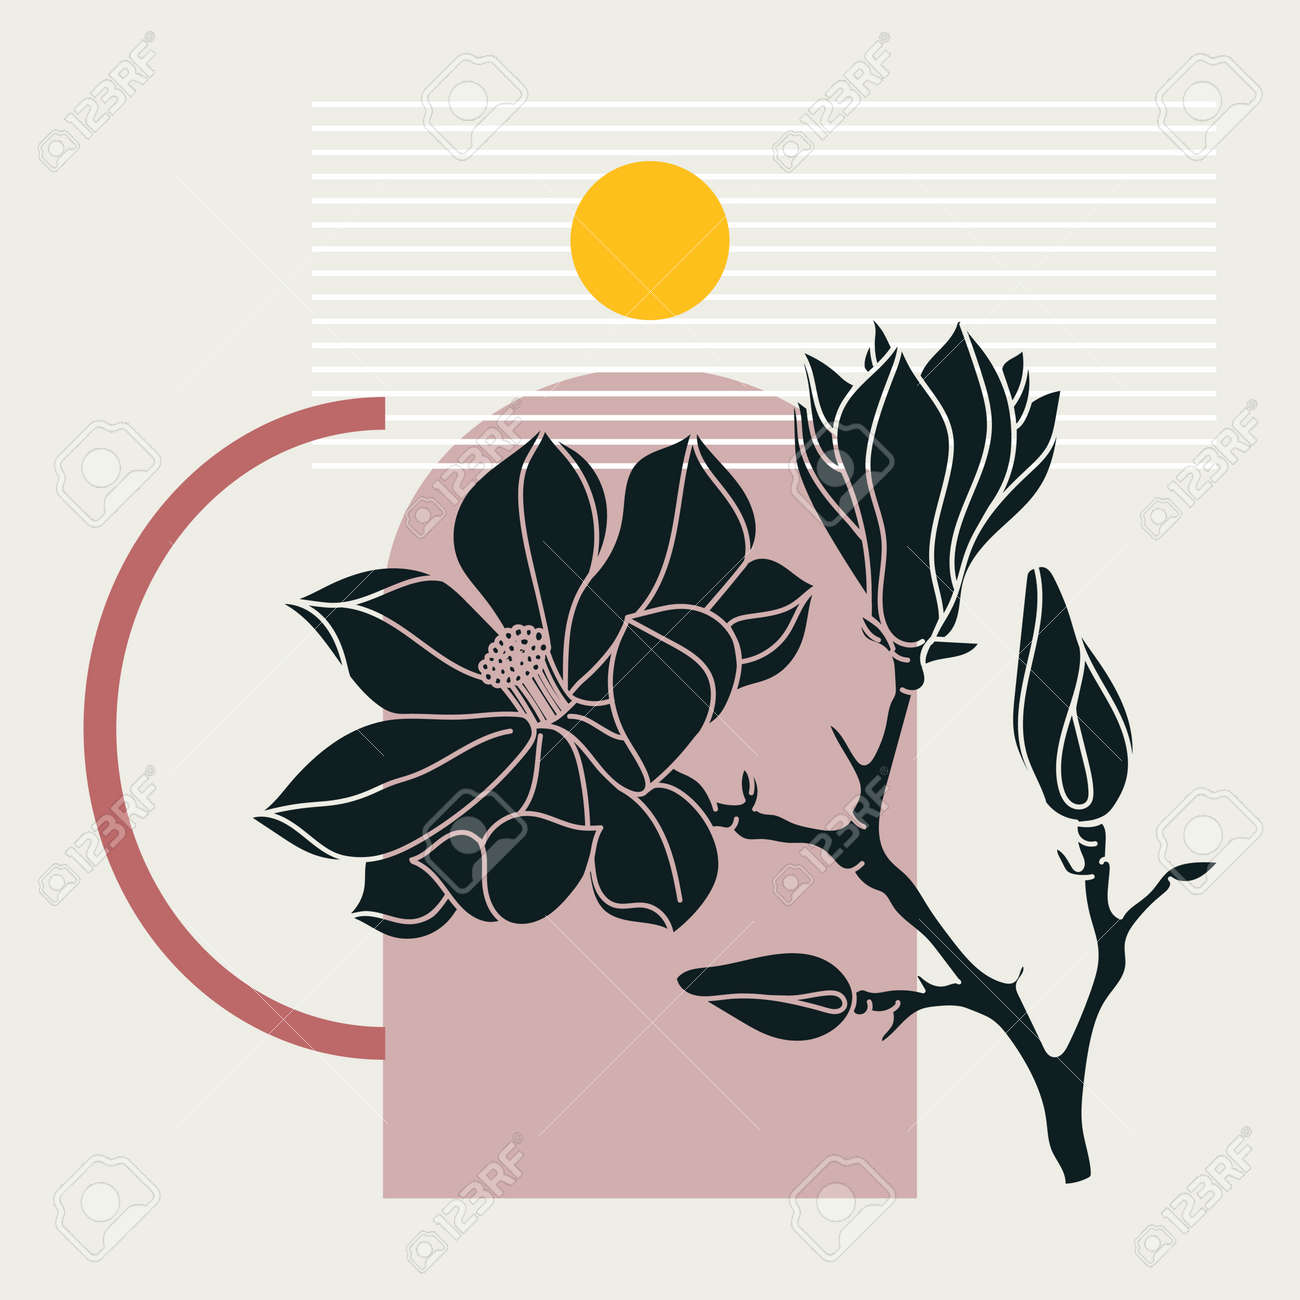 Collage style magnolia design. Trendy abstract illustration with floral and geometric elements. Can be used for prints, wall art, social media, mobile apps, banners design and web / internet ads - 170065562